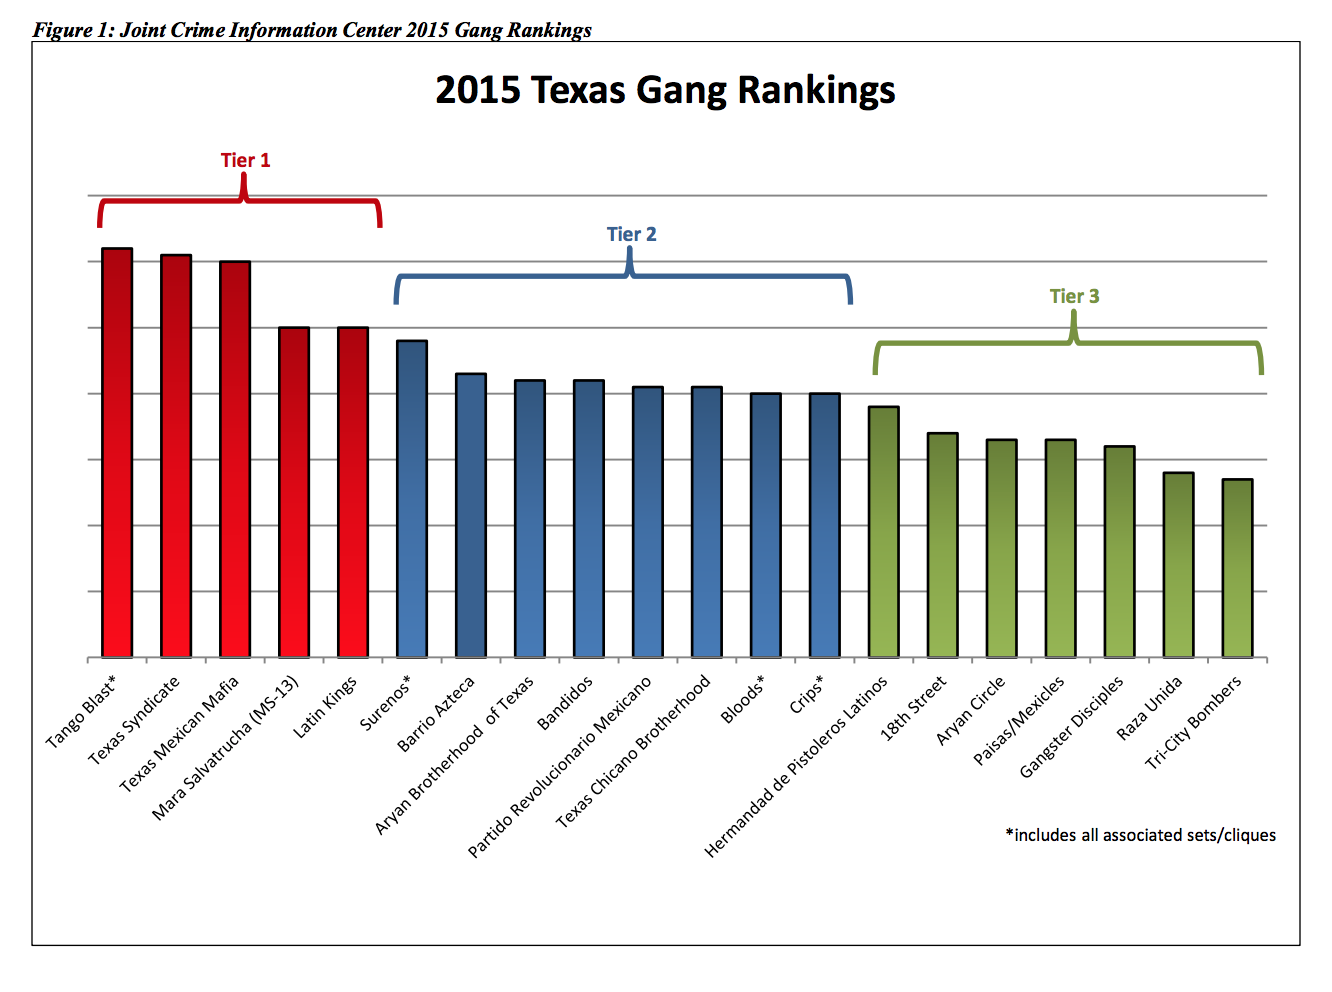 Joint Crime Information Center 2015 Gang Rankings